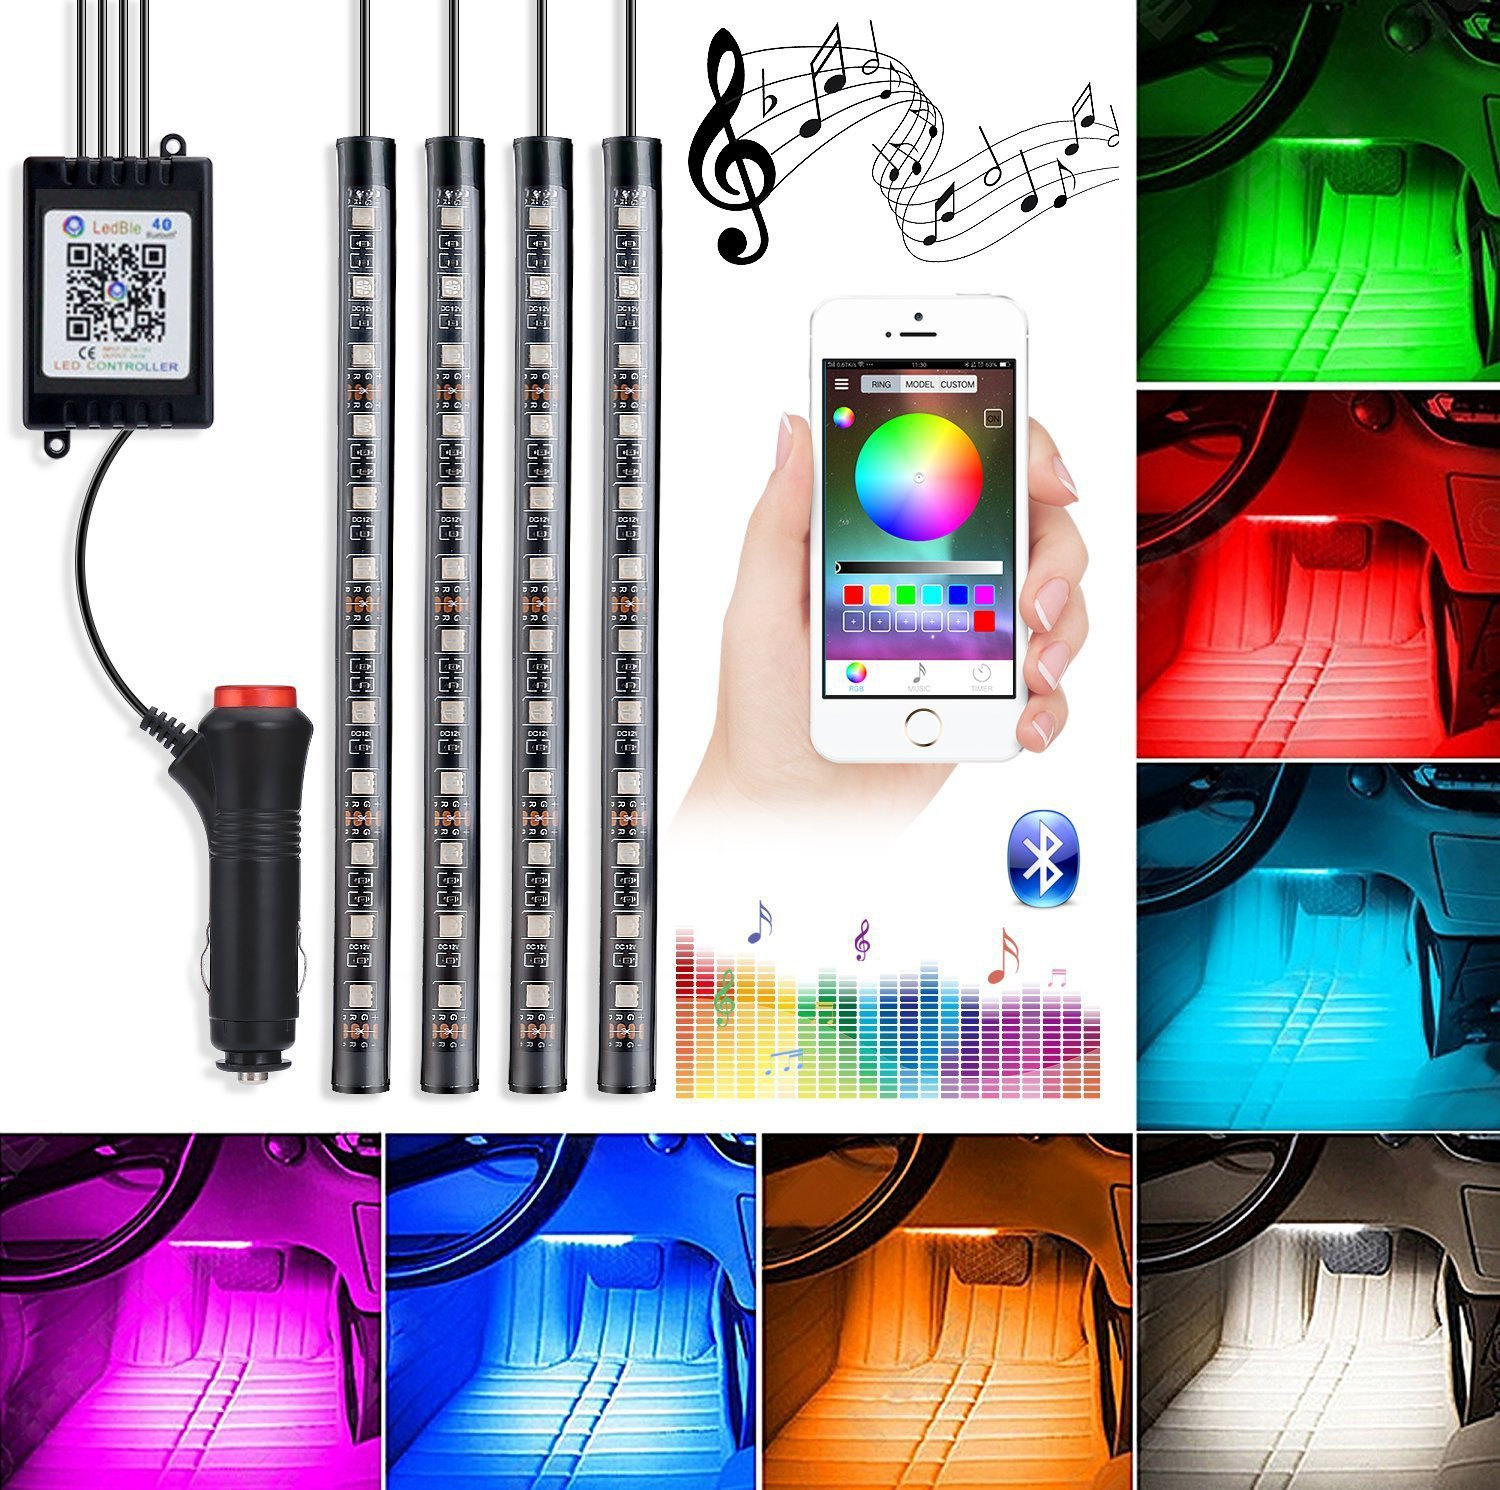 Automotive LED Decor Strip Lights, 4pcs 48 LED Lights DV 12V Car Colorful Music RGB LED Interior Lighting, Car Decorative Lights, With Sound-activated, APP Controller, Car Charger Included